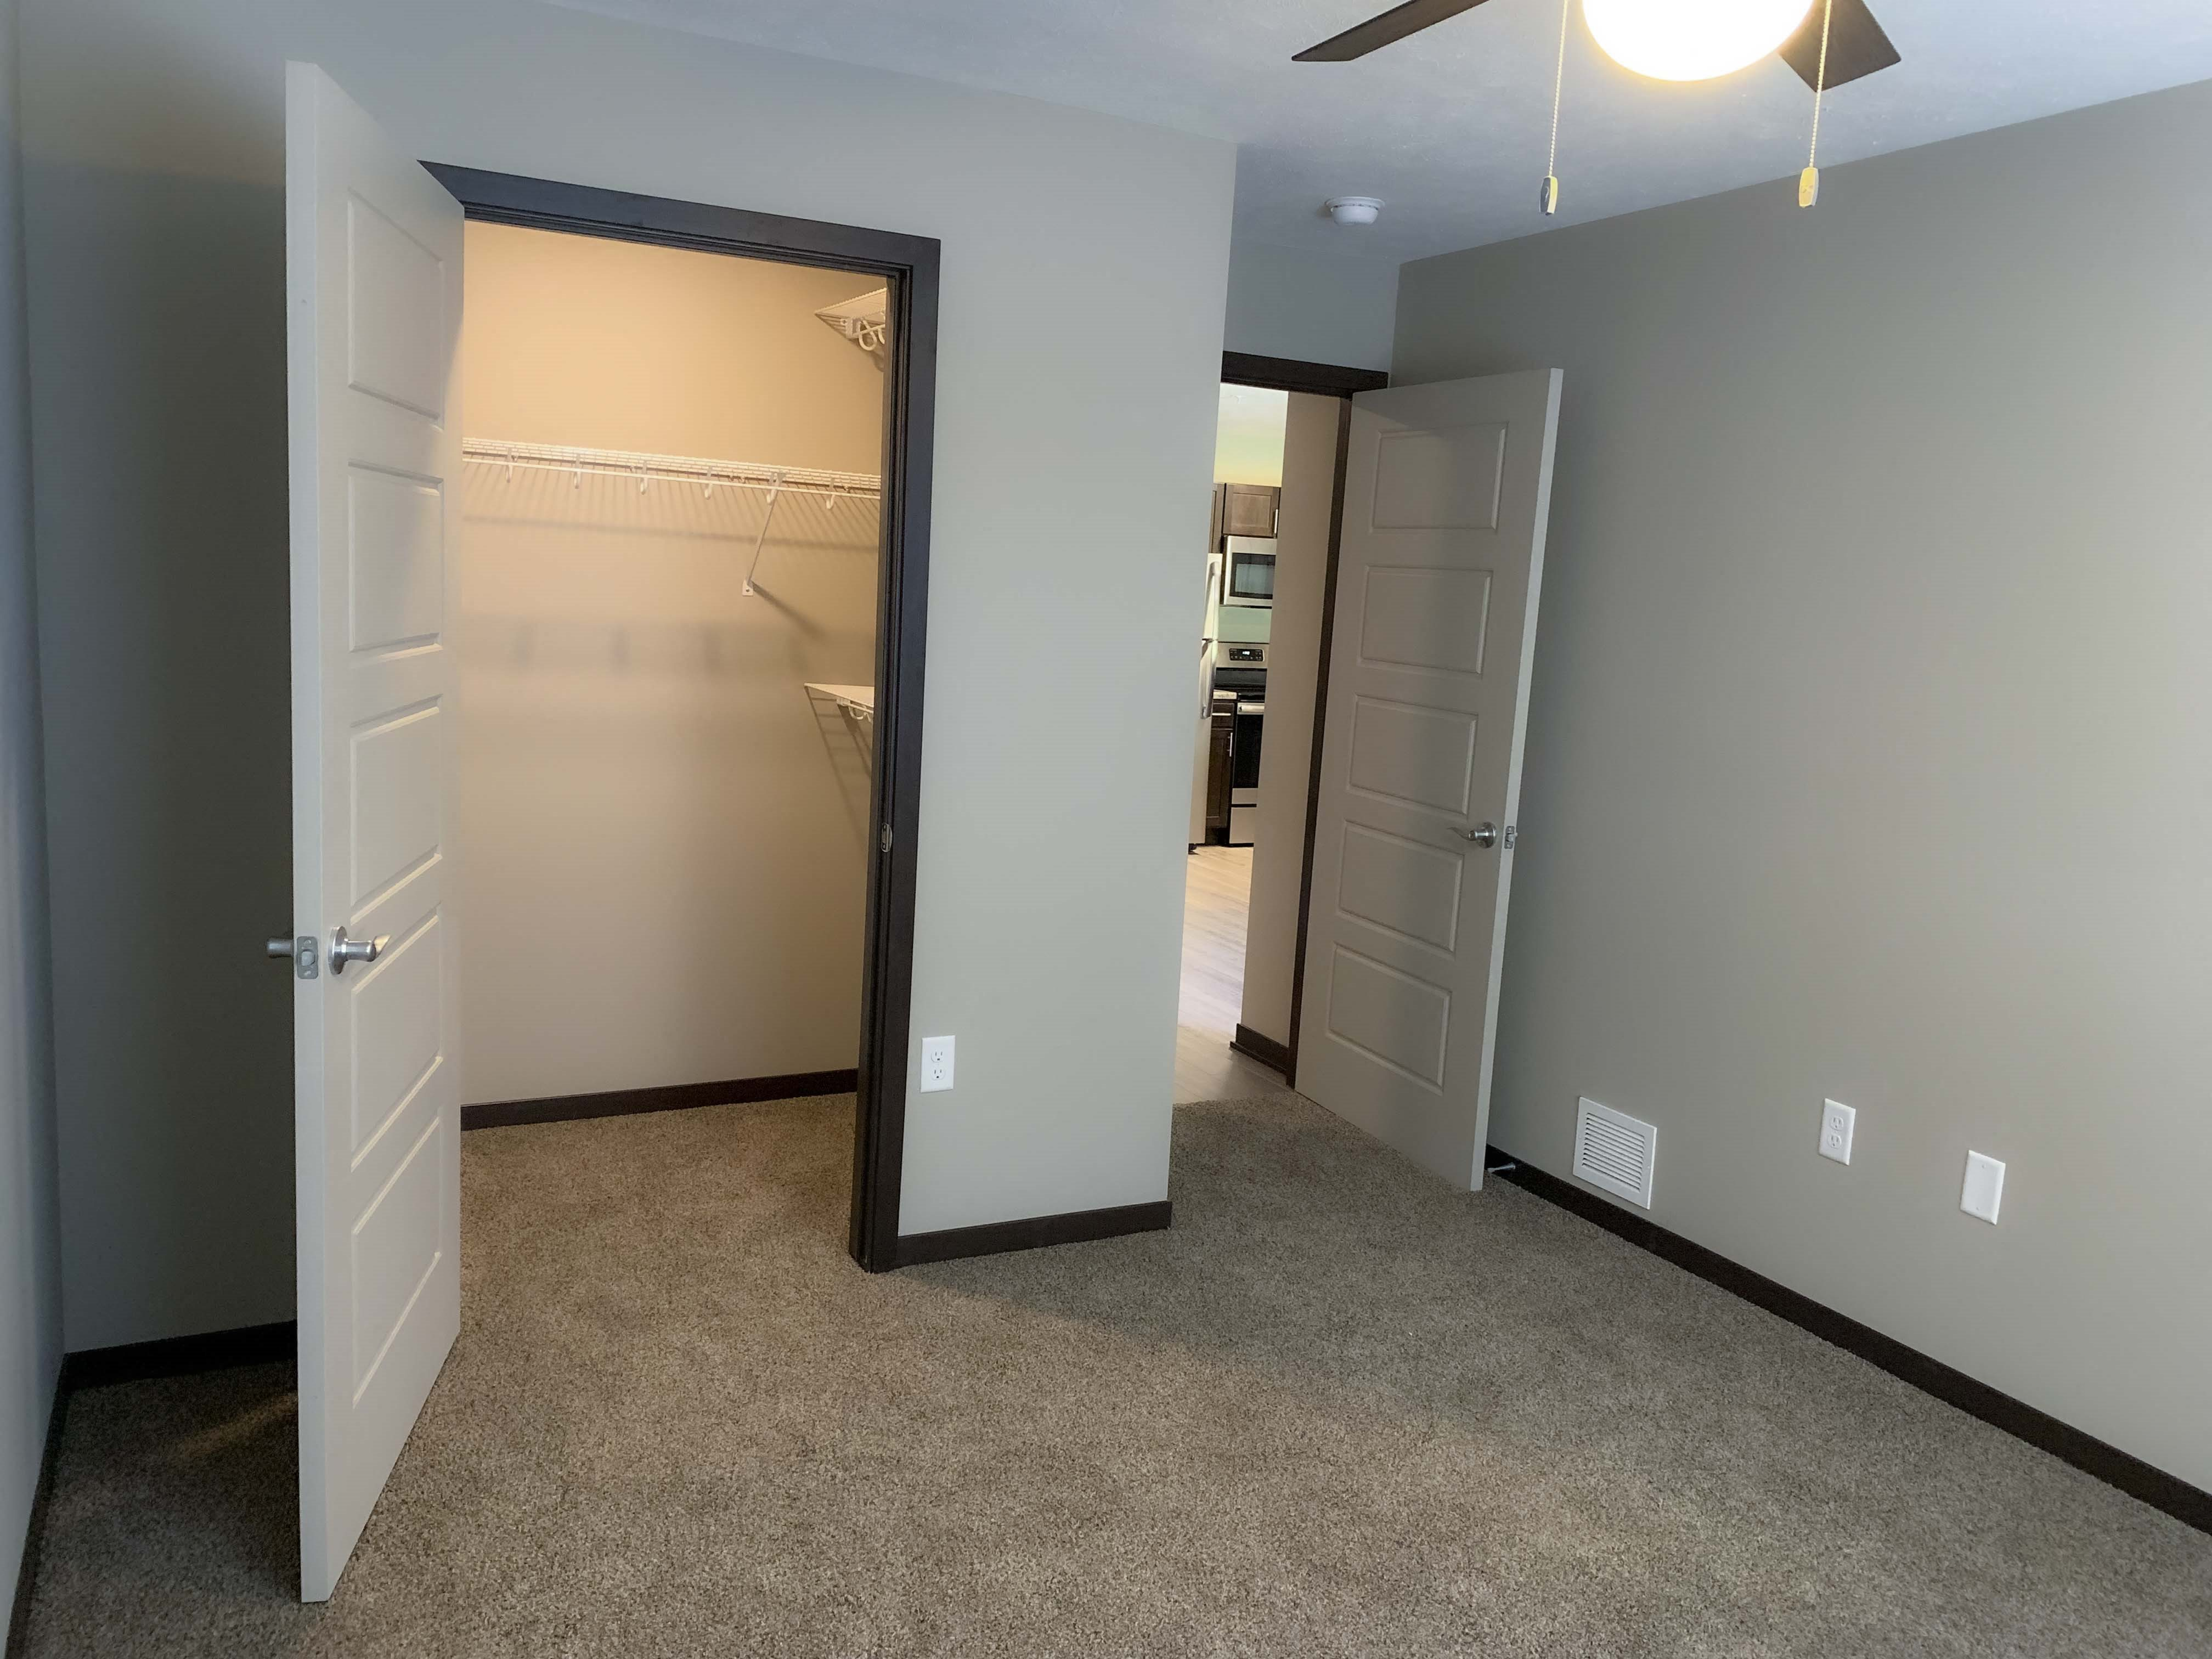 Renovated bedroom with large walk in closet at Northridge Heights in north Lincoln